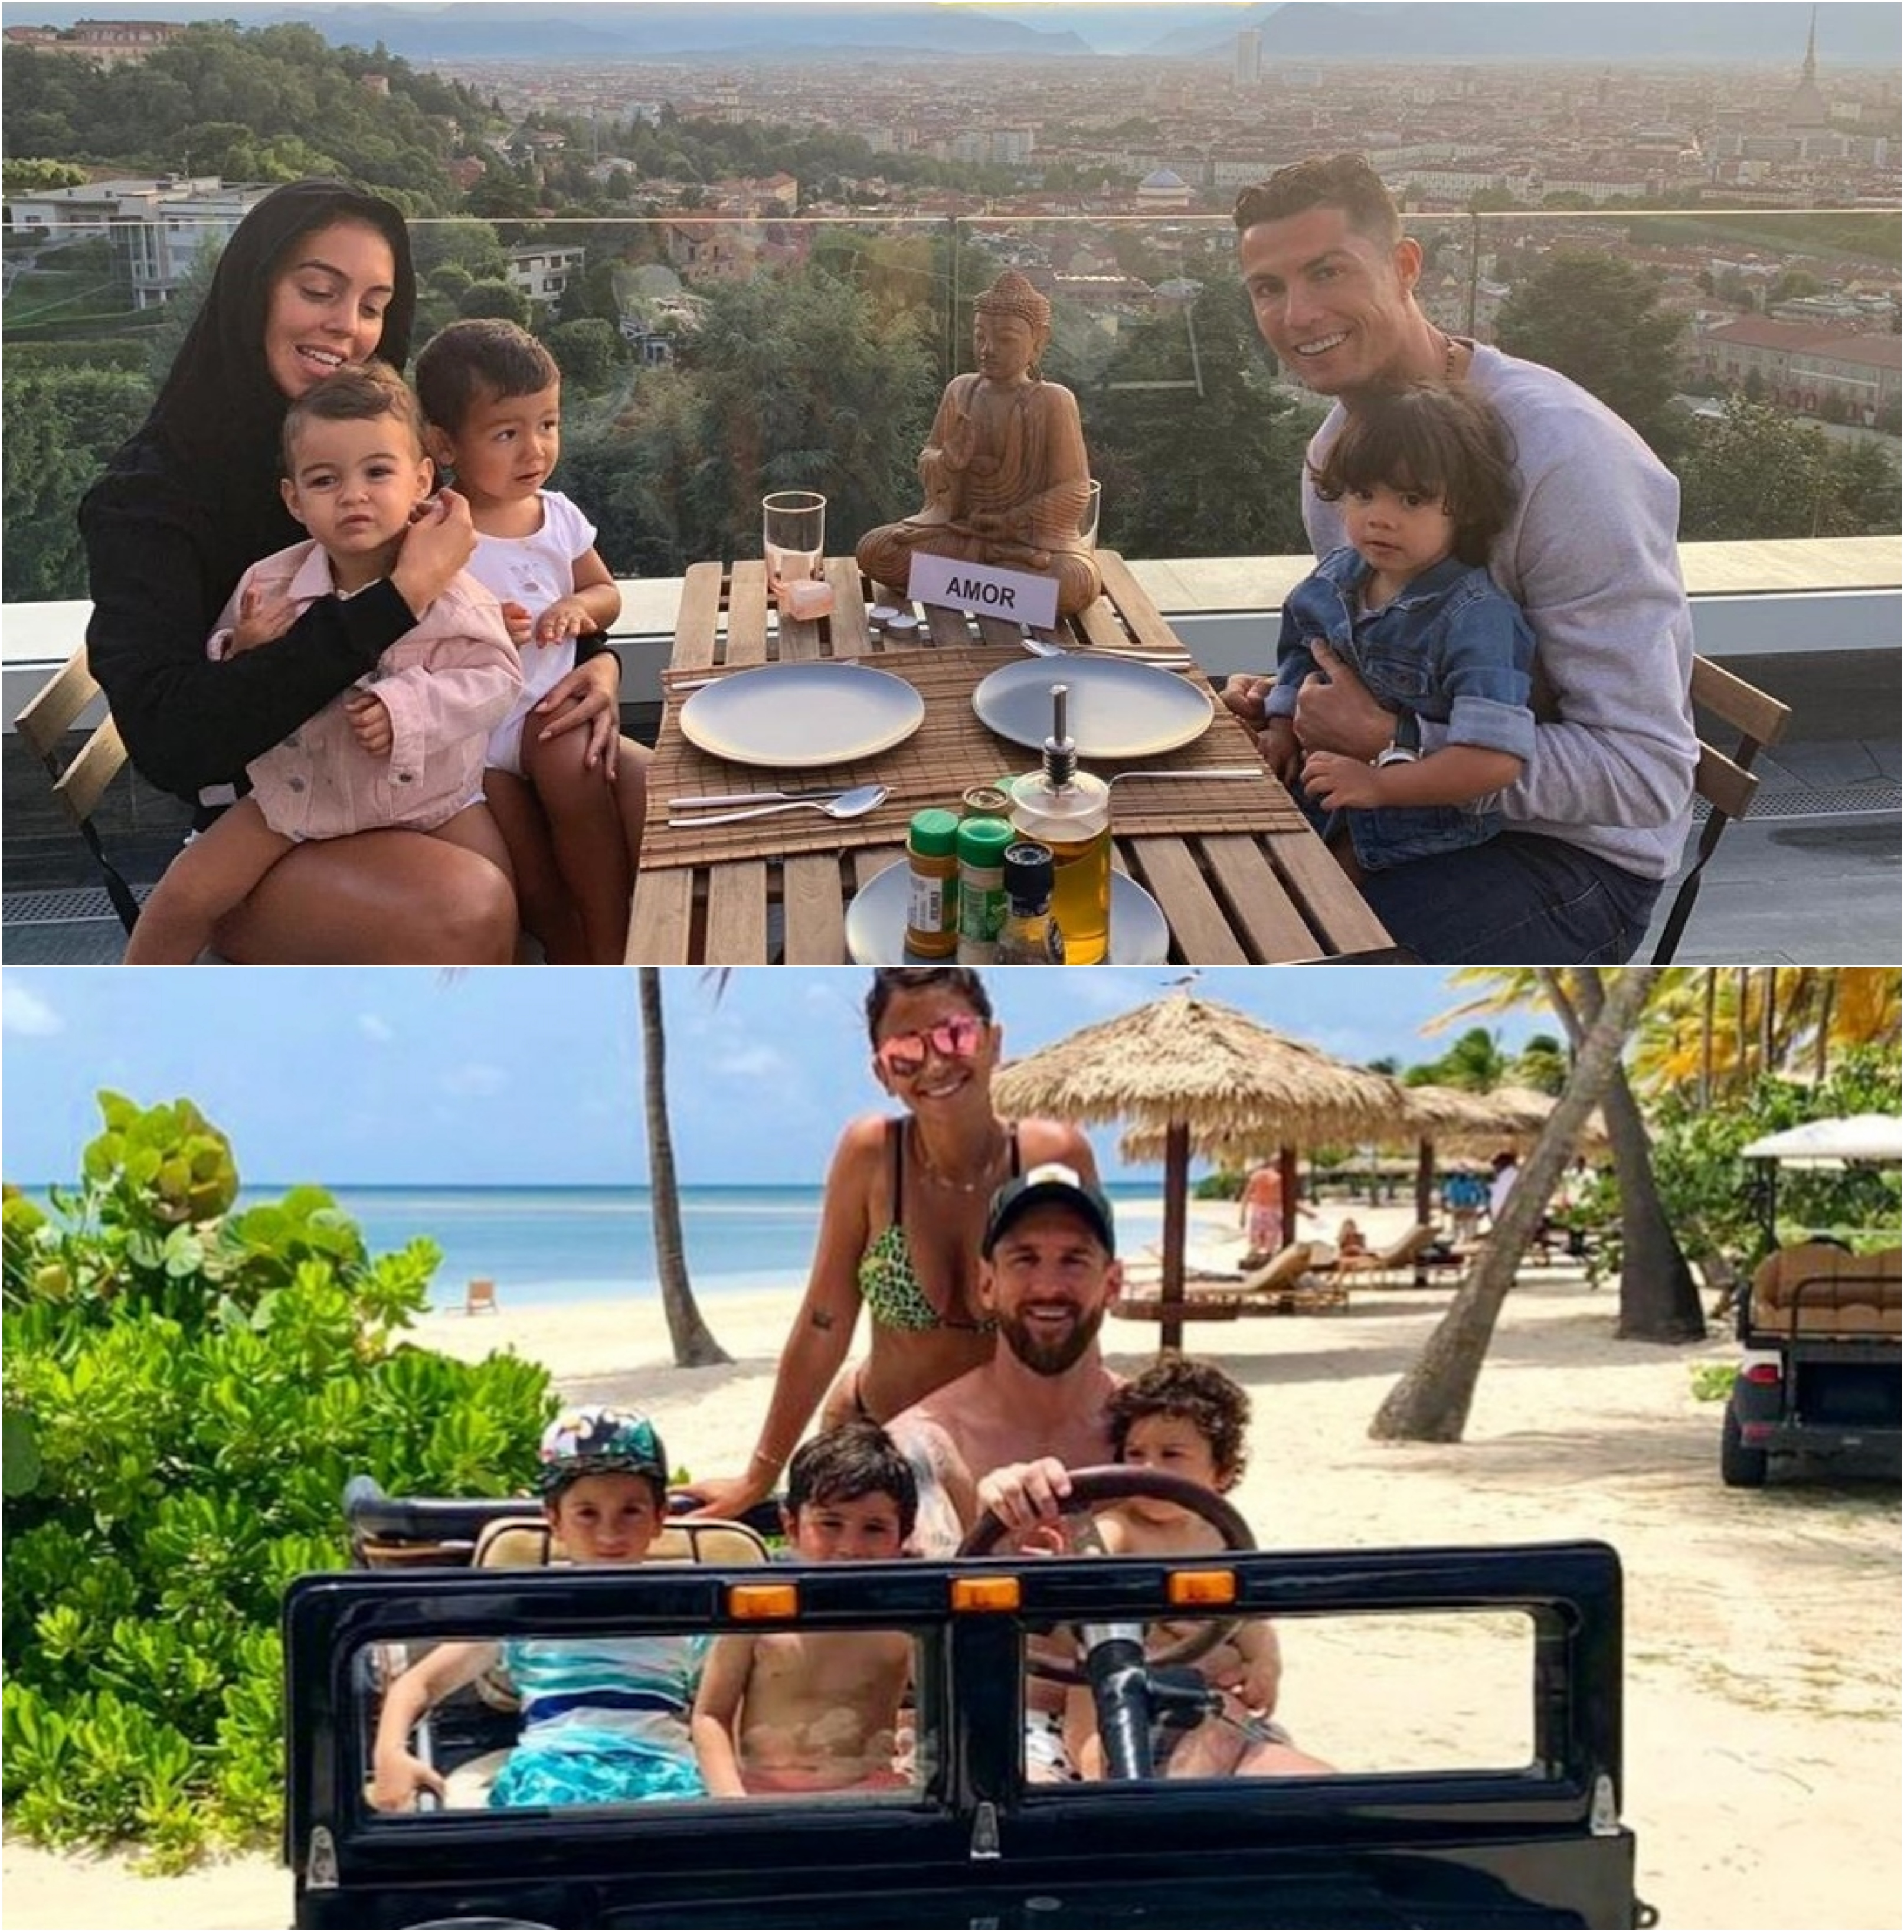 Lionel Messi and Cristiano Ronaldo enjoy quality time with their families